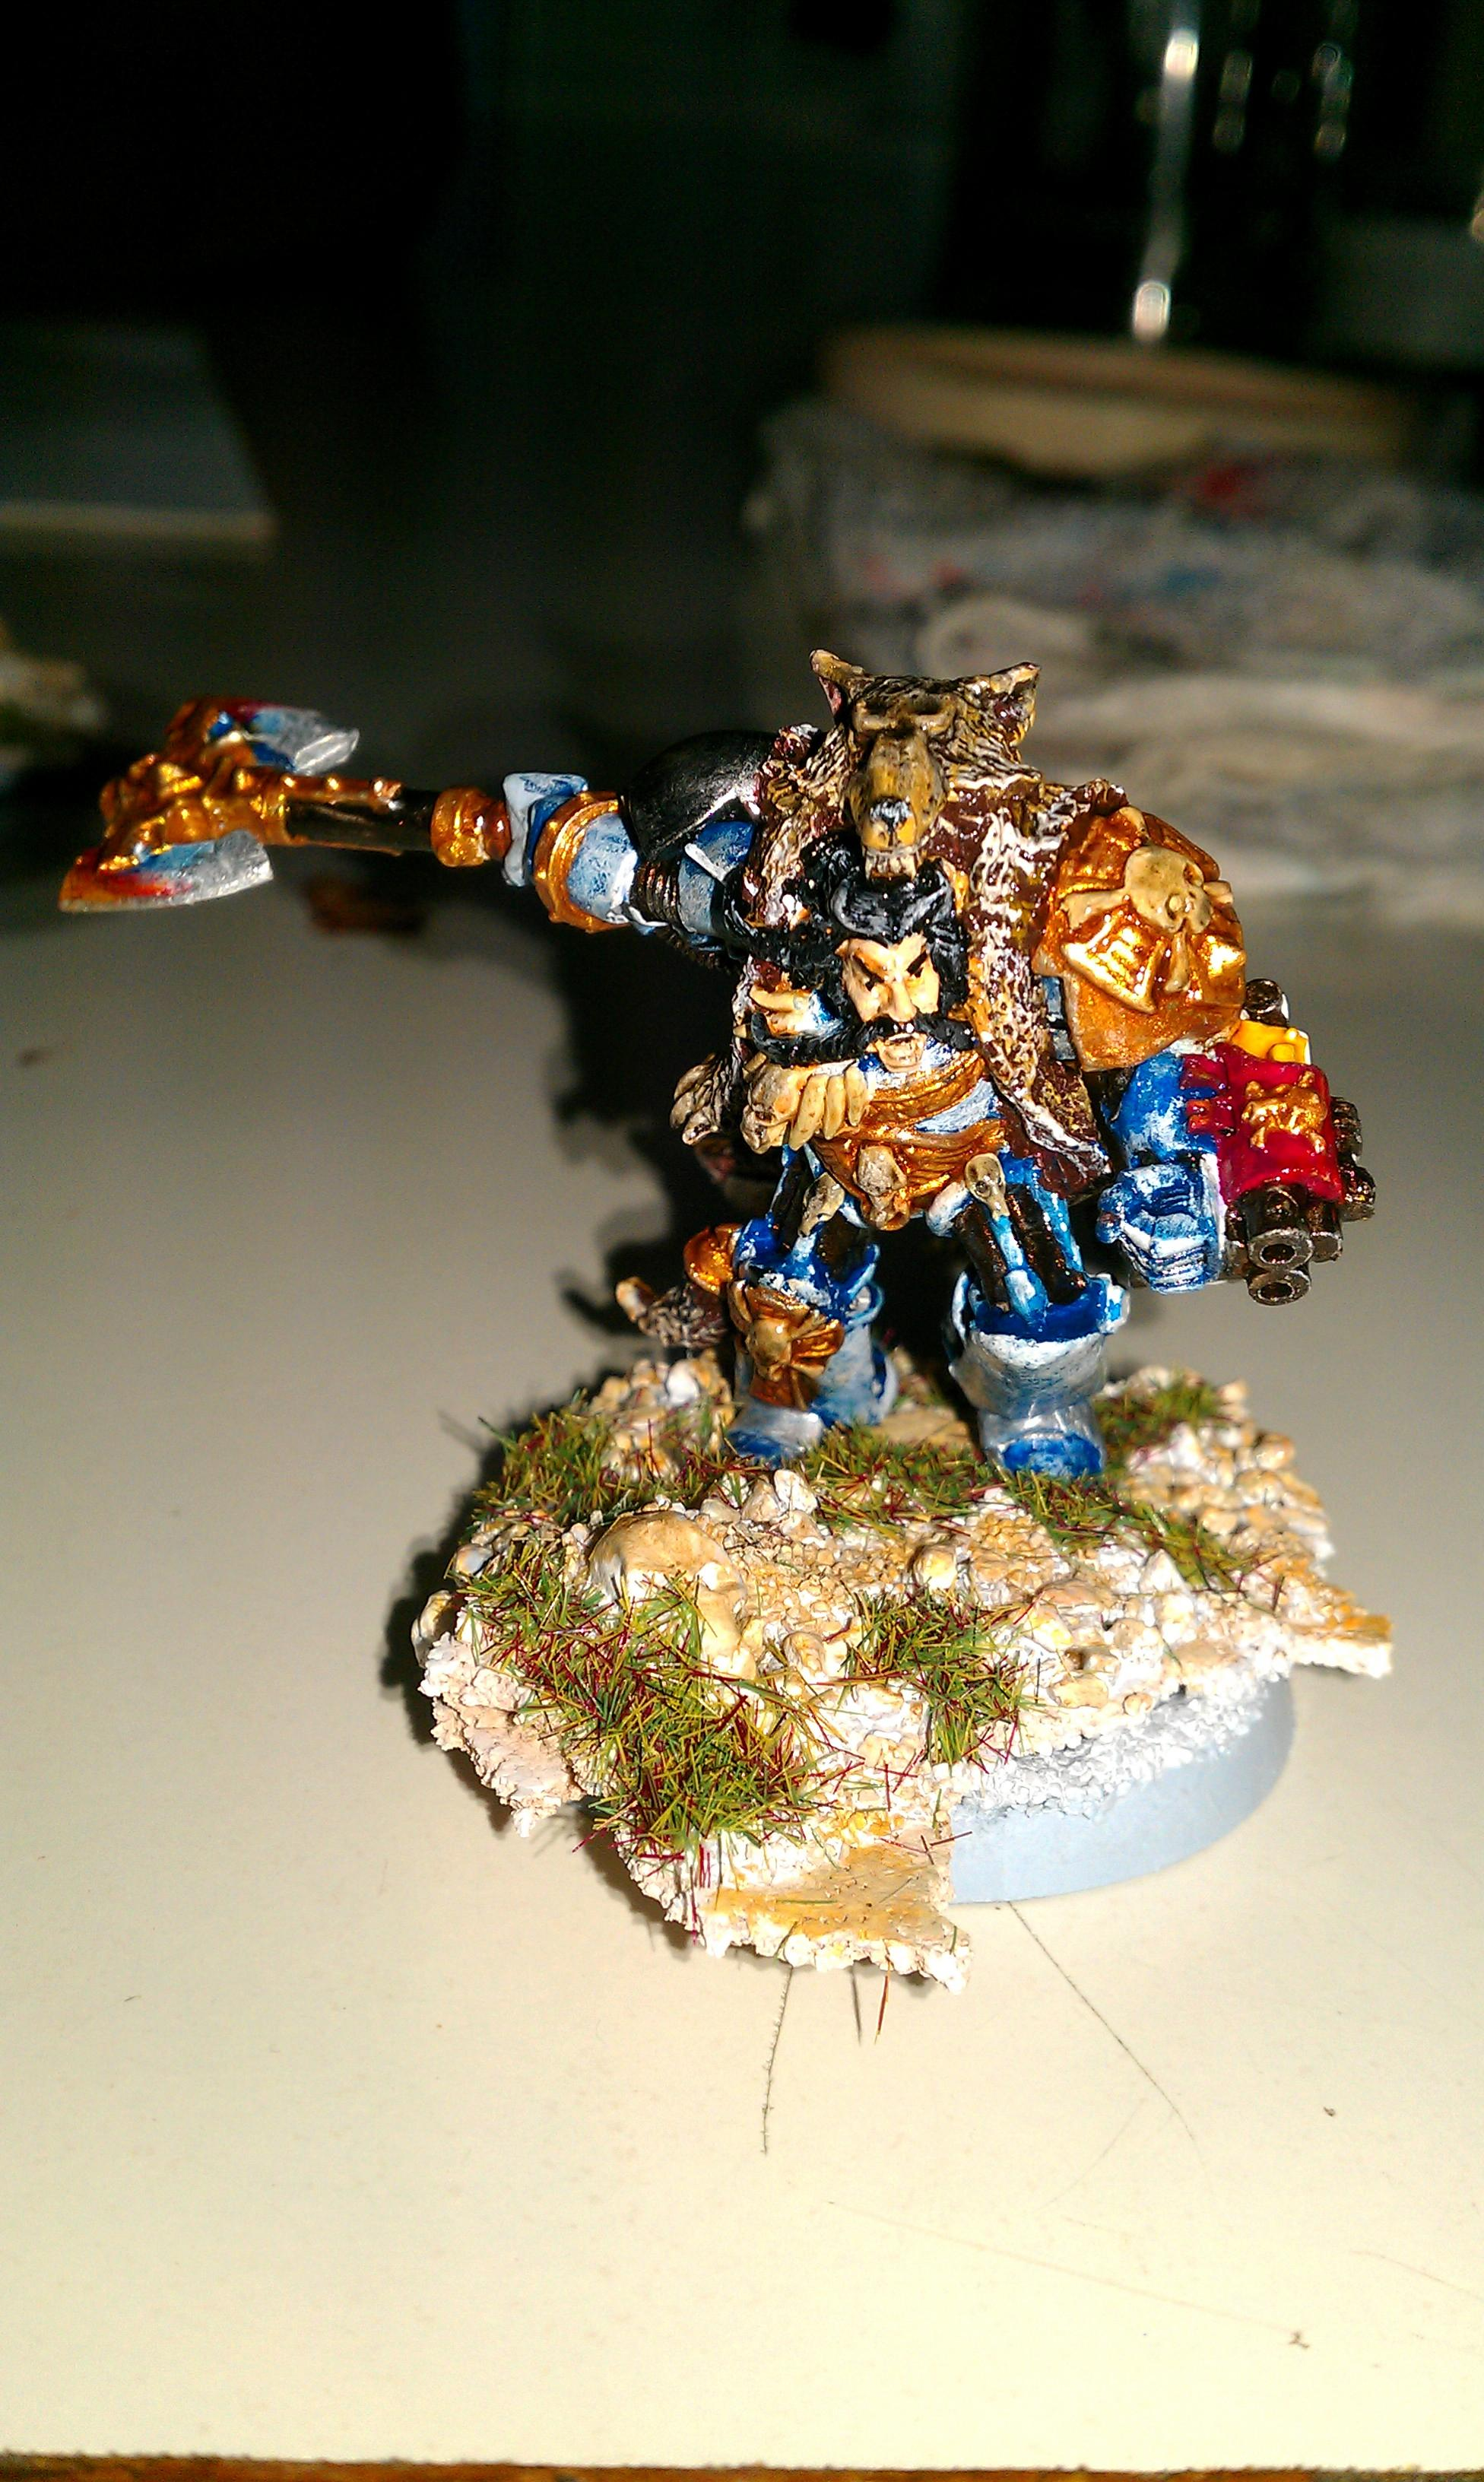 Commander, Logan, Space Wolfes, Space Wolves, Warhammer 40,000